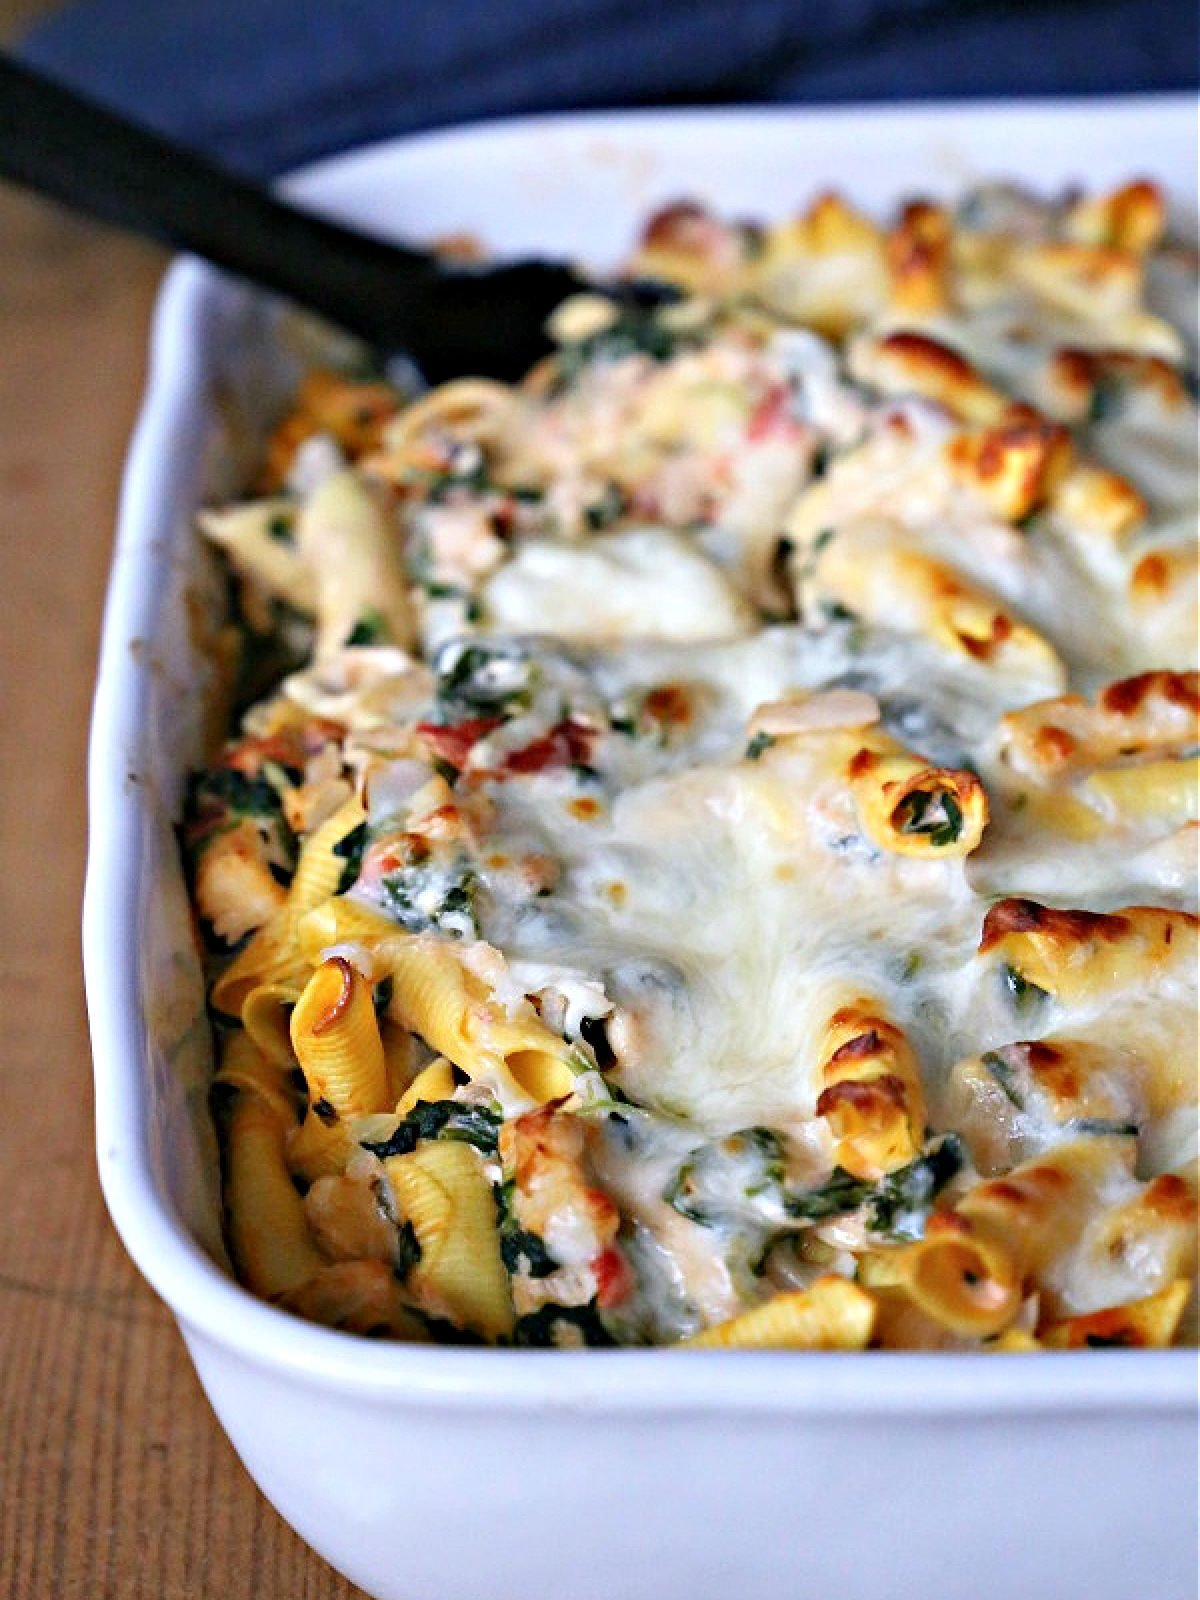 Chicken and spinach casserole in a white baking dish.